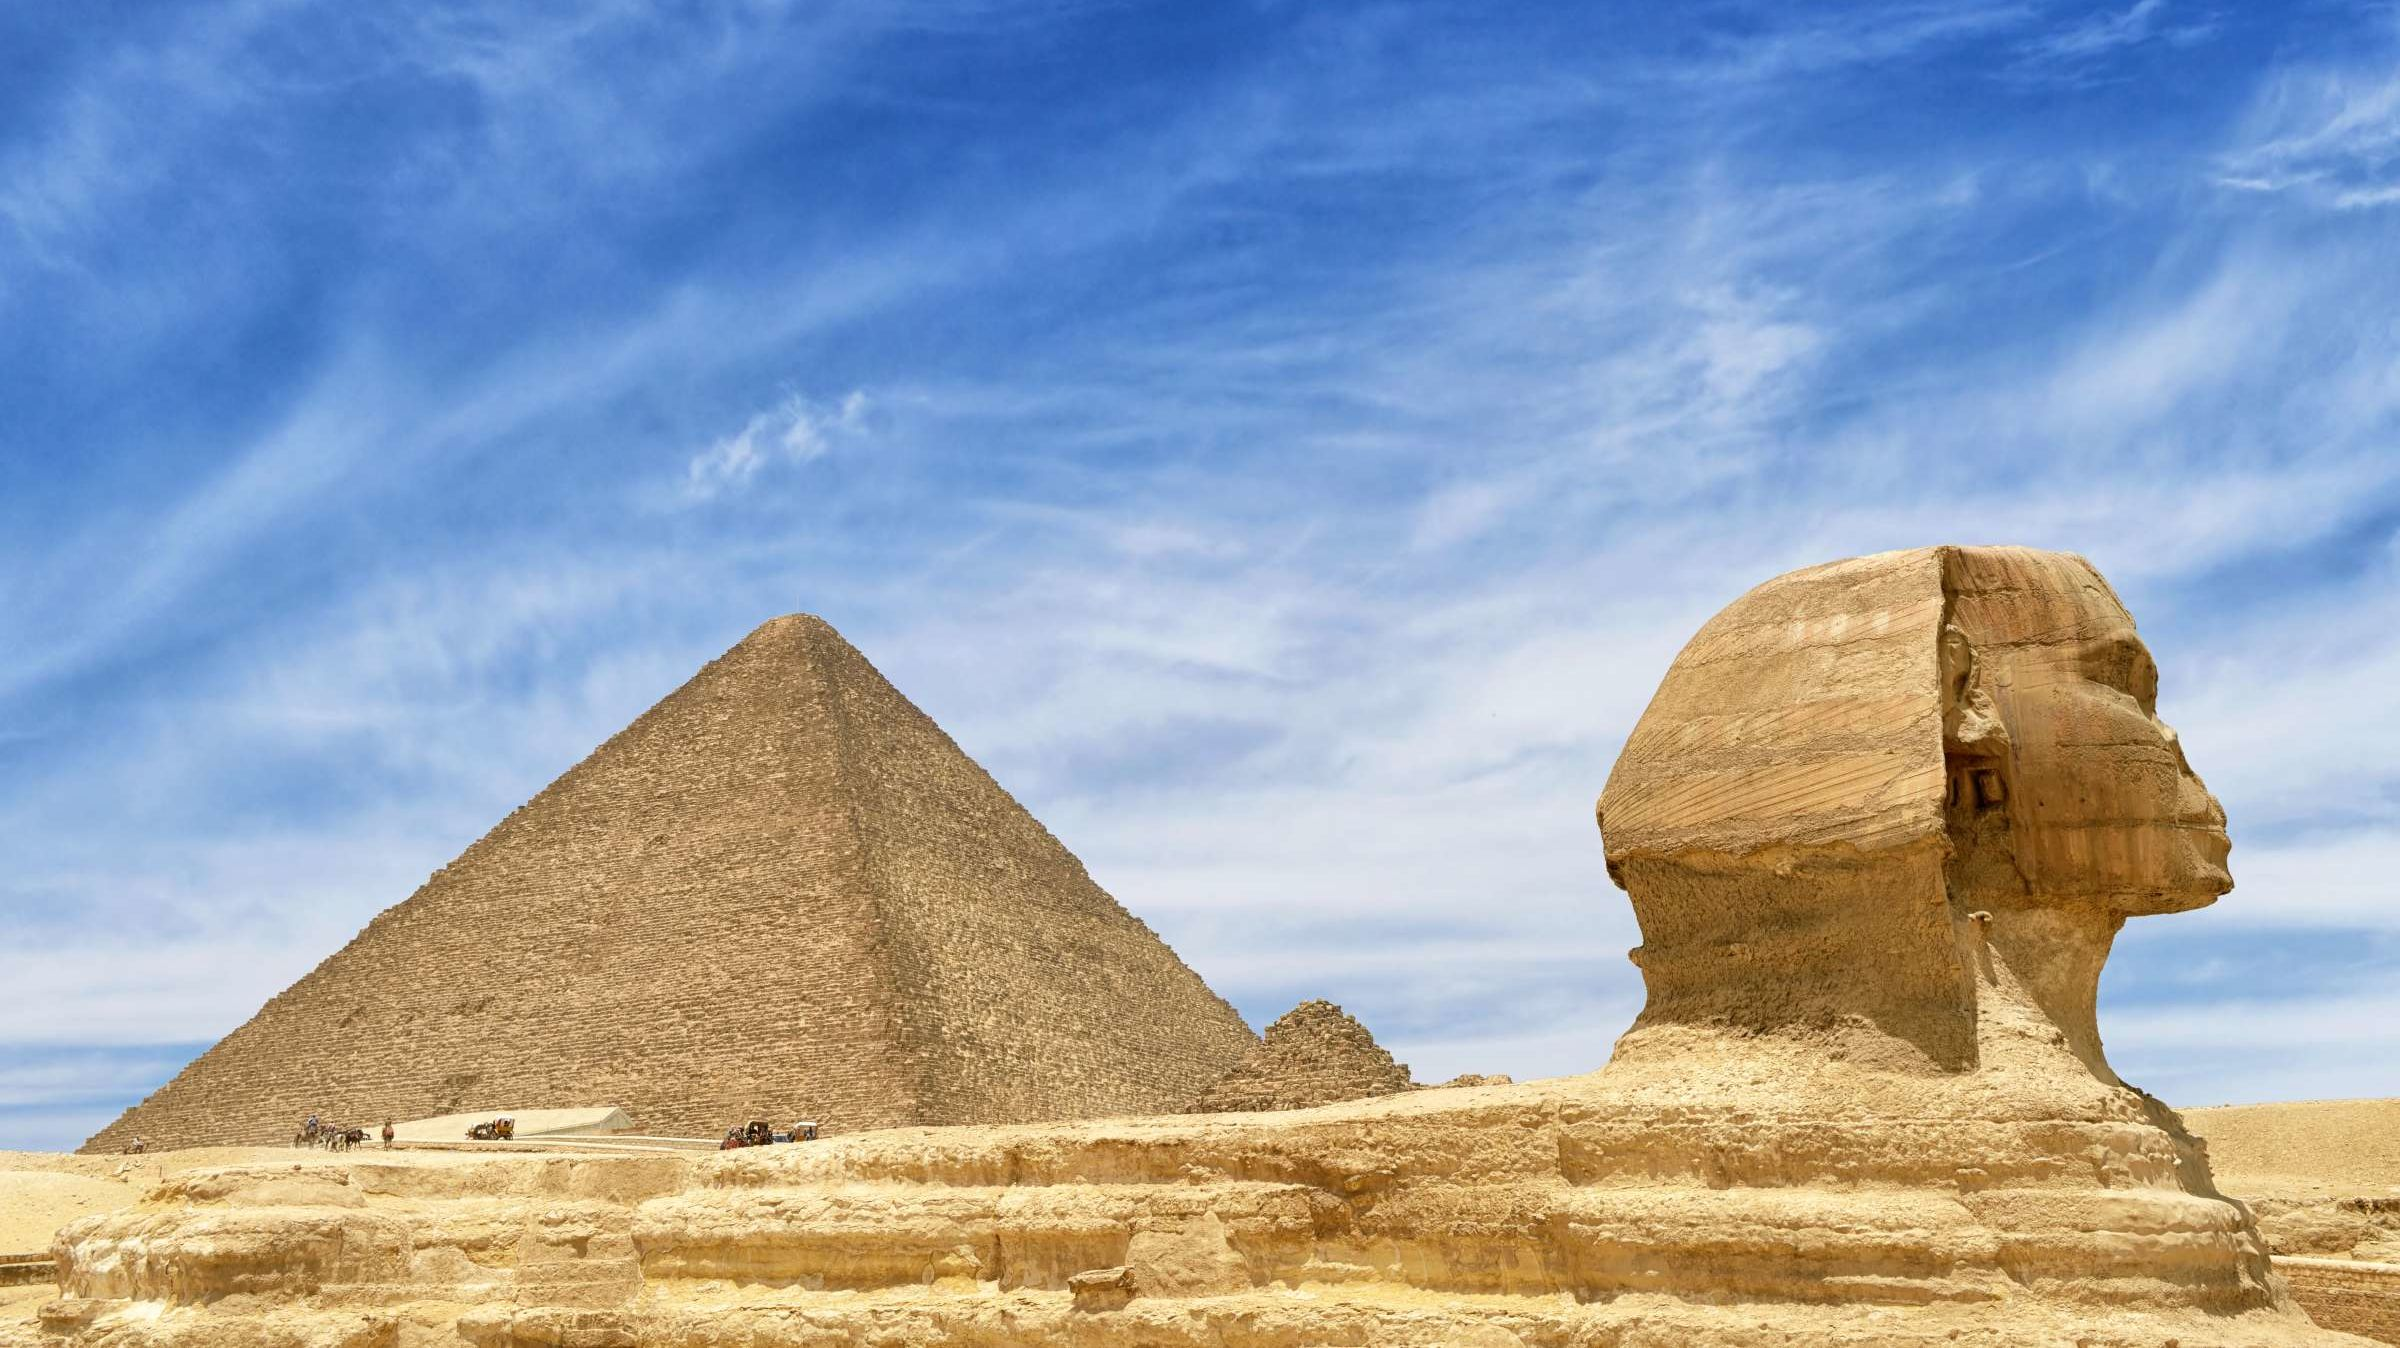 Visit the Pyramids of Giza Without Even Leaving Your Couch